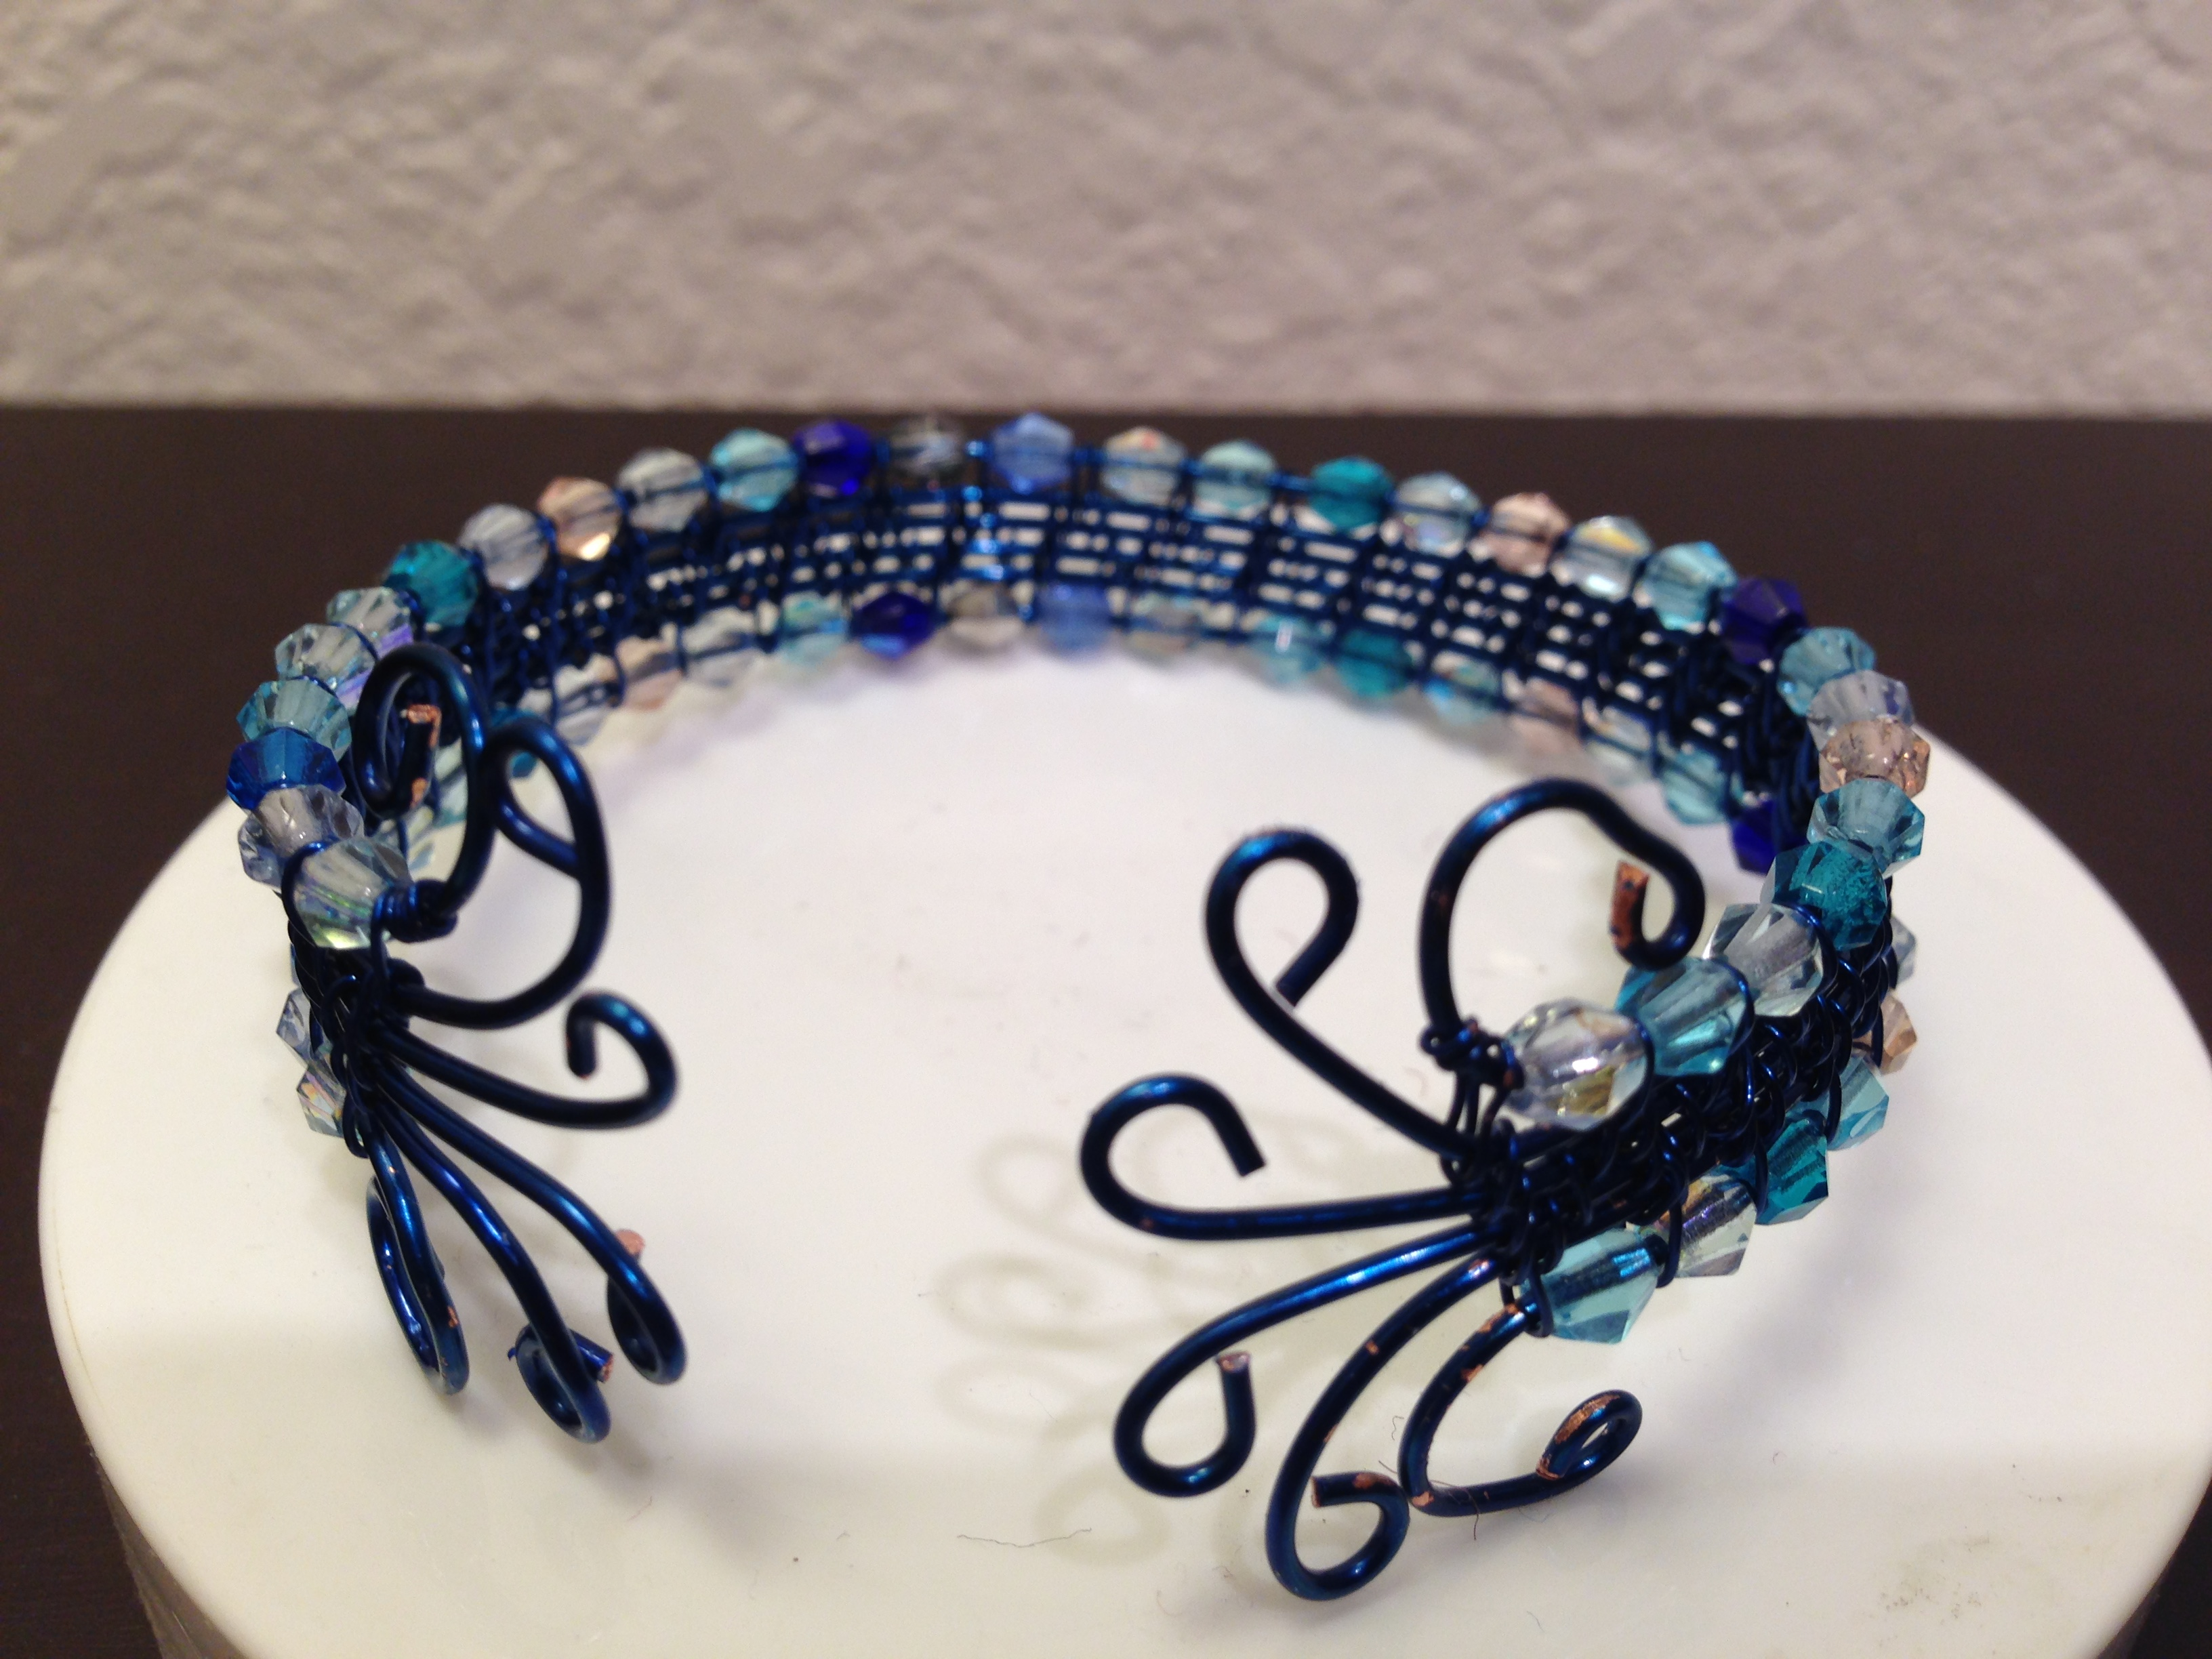 Woven wire bracelet in blue